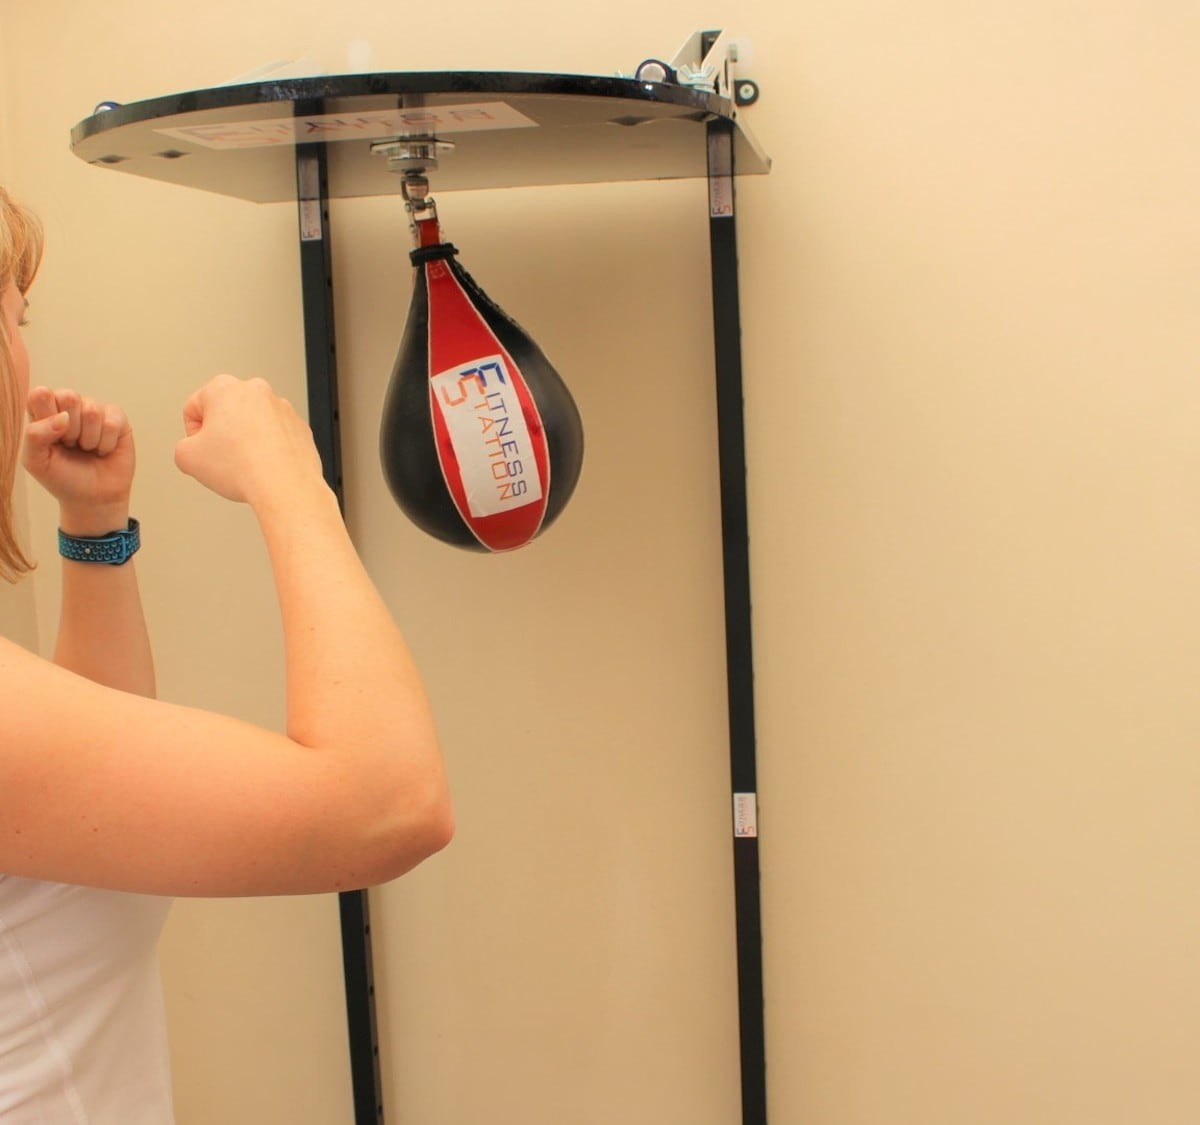 Fitness Station Modular Home Gym takes up minimal space and covers all your exercise needs